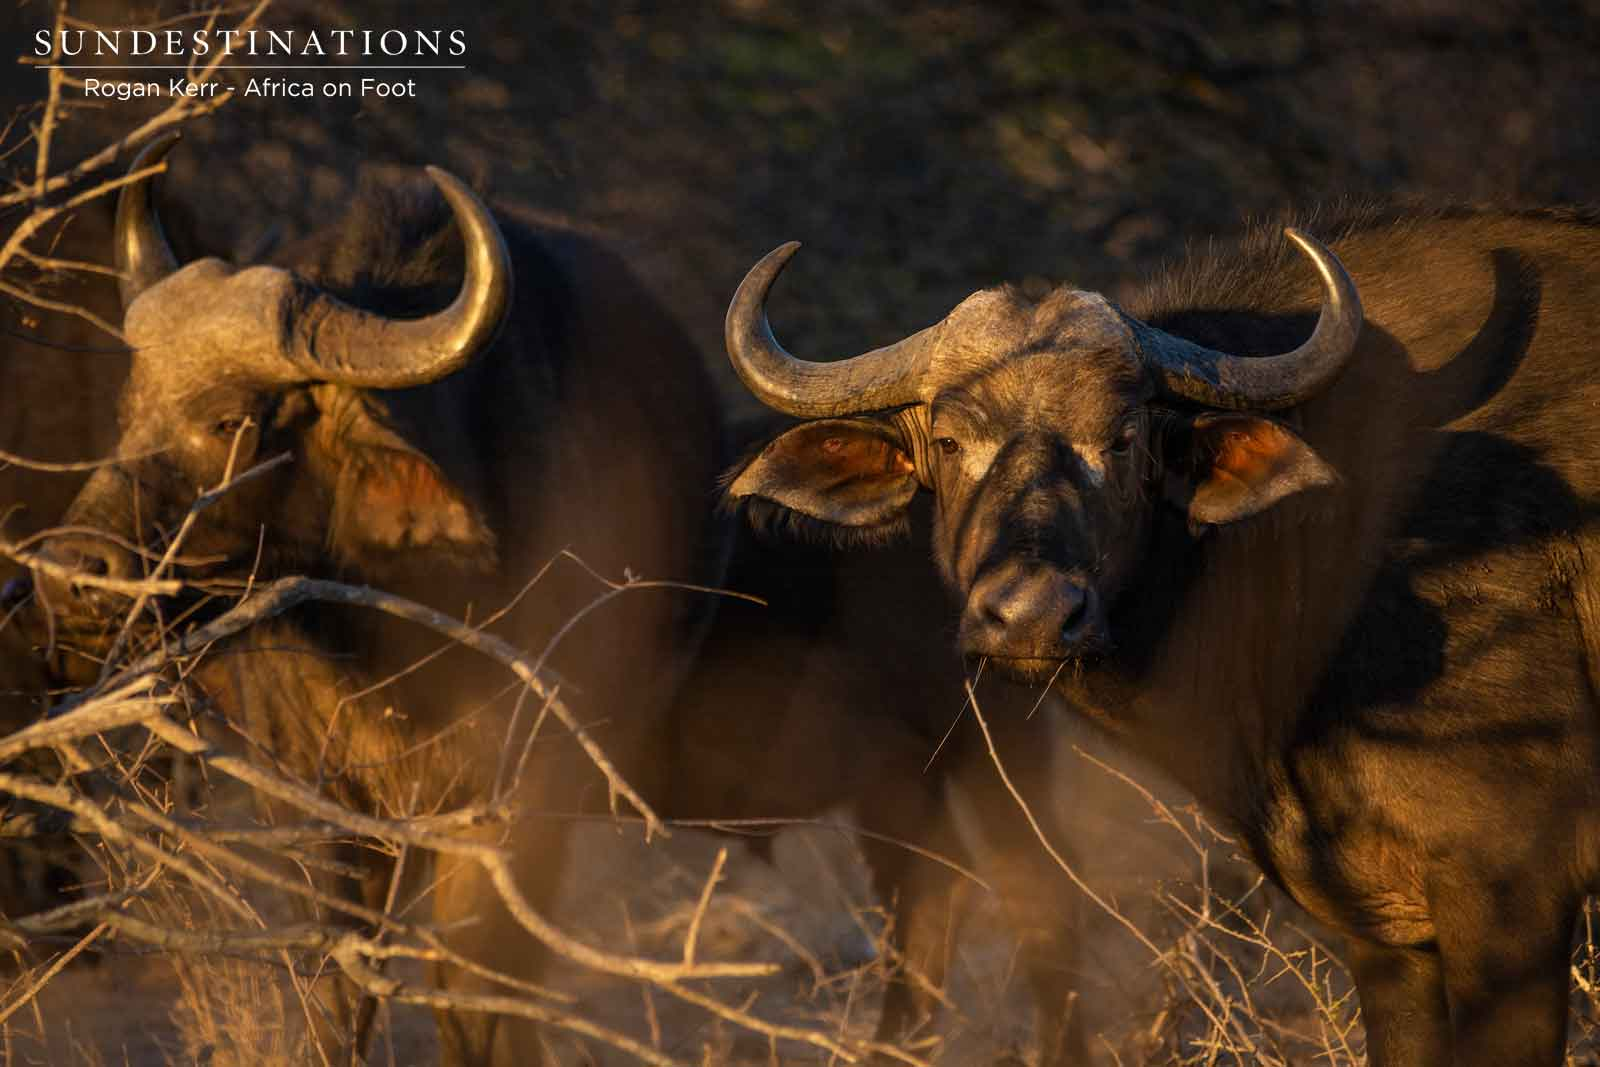 Buffalo at Africa on Foot